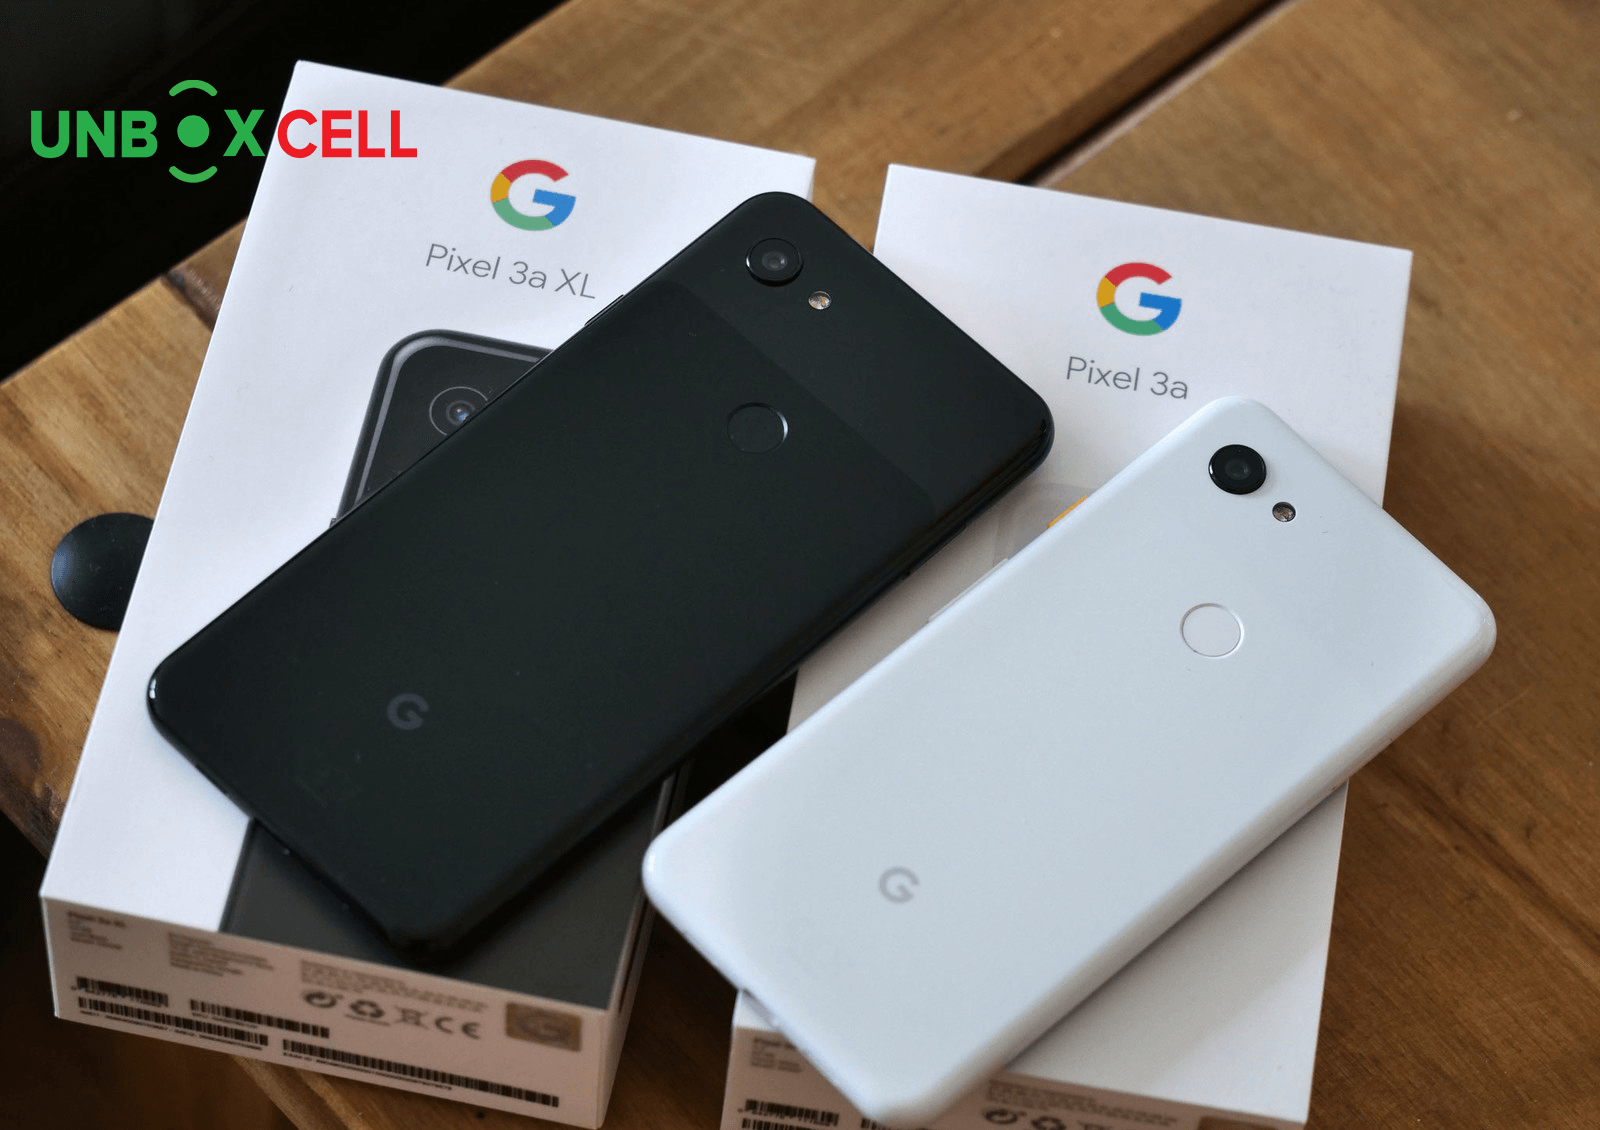 specs- unbox cell